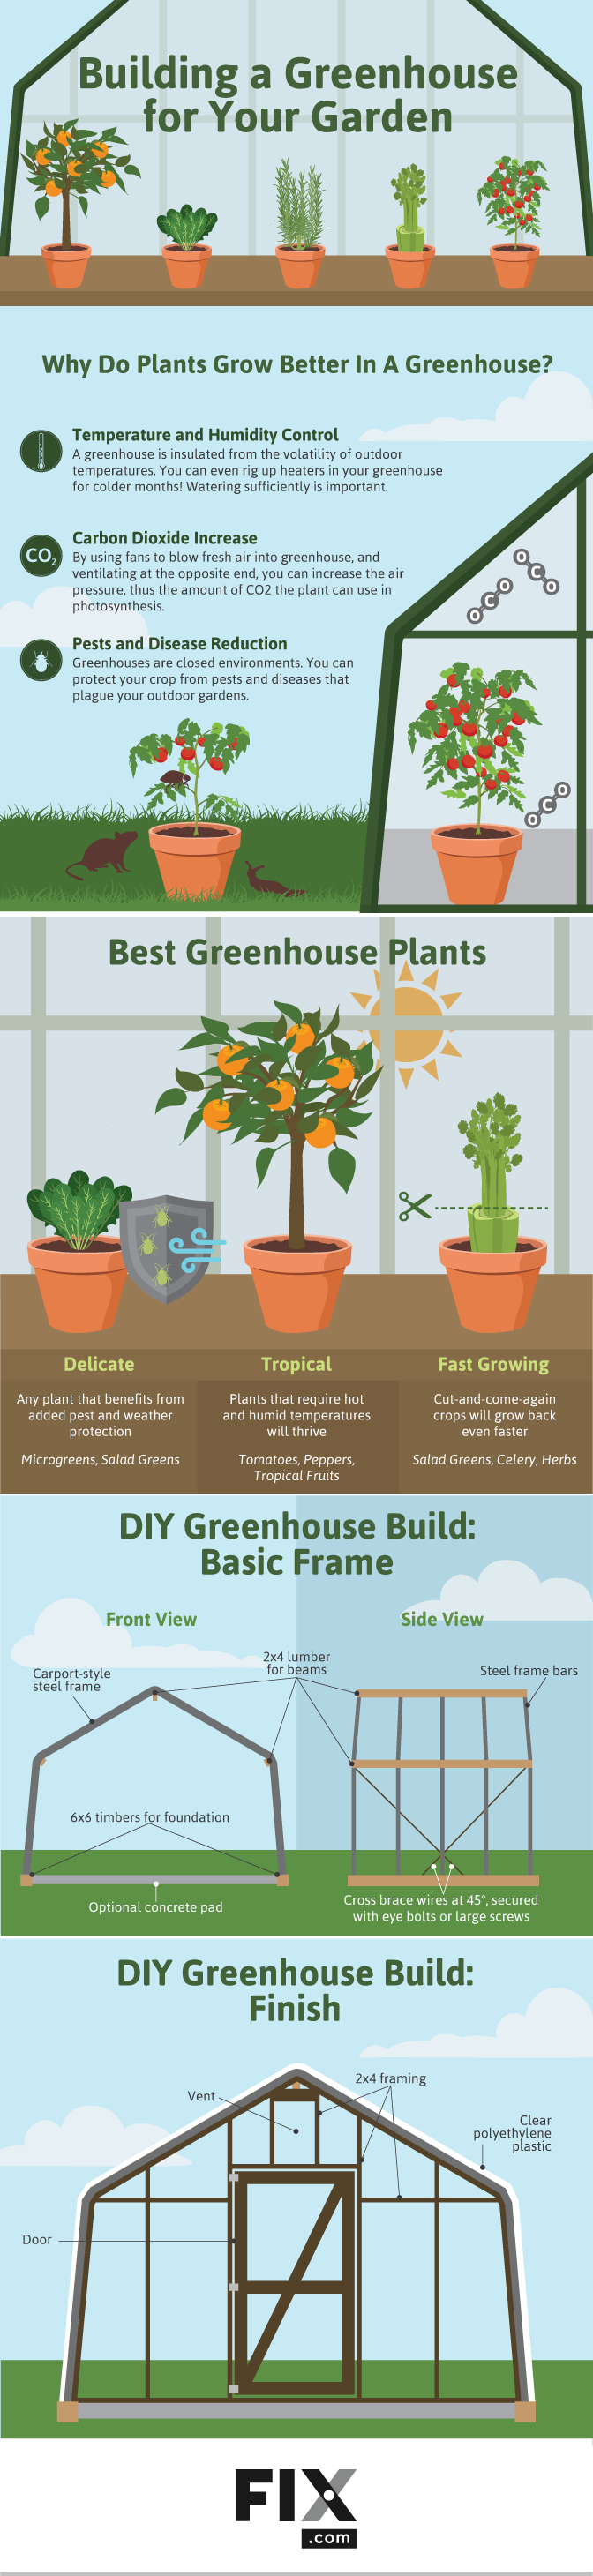 Building a Greenhouse for Your Garden #infographic